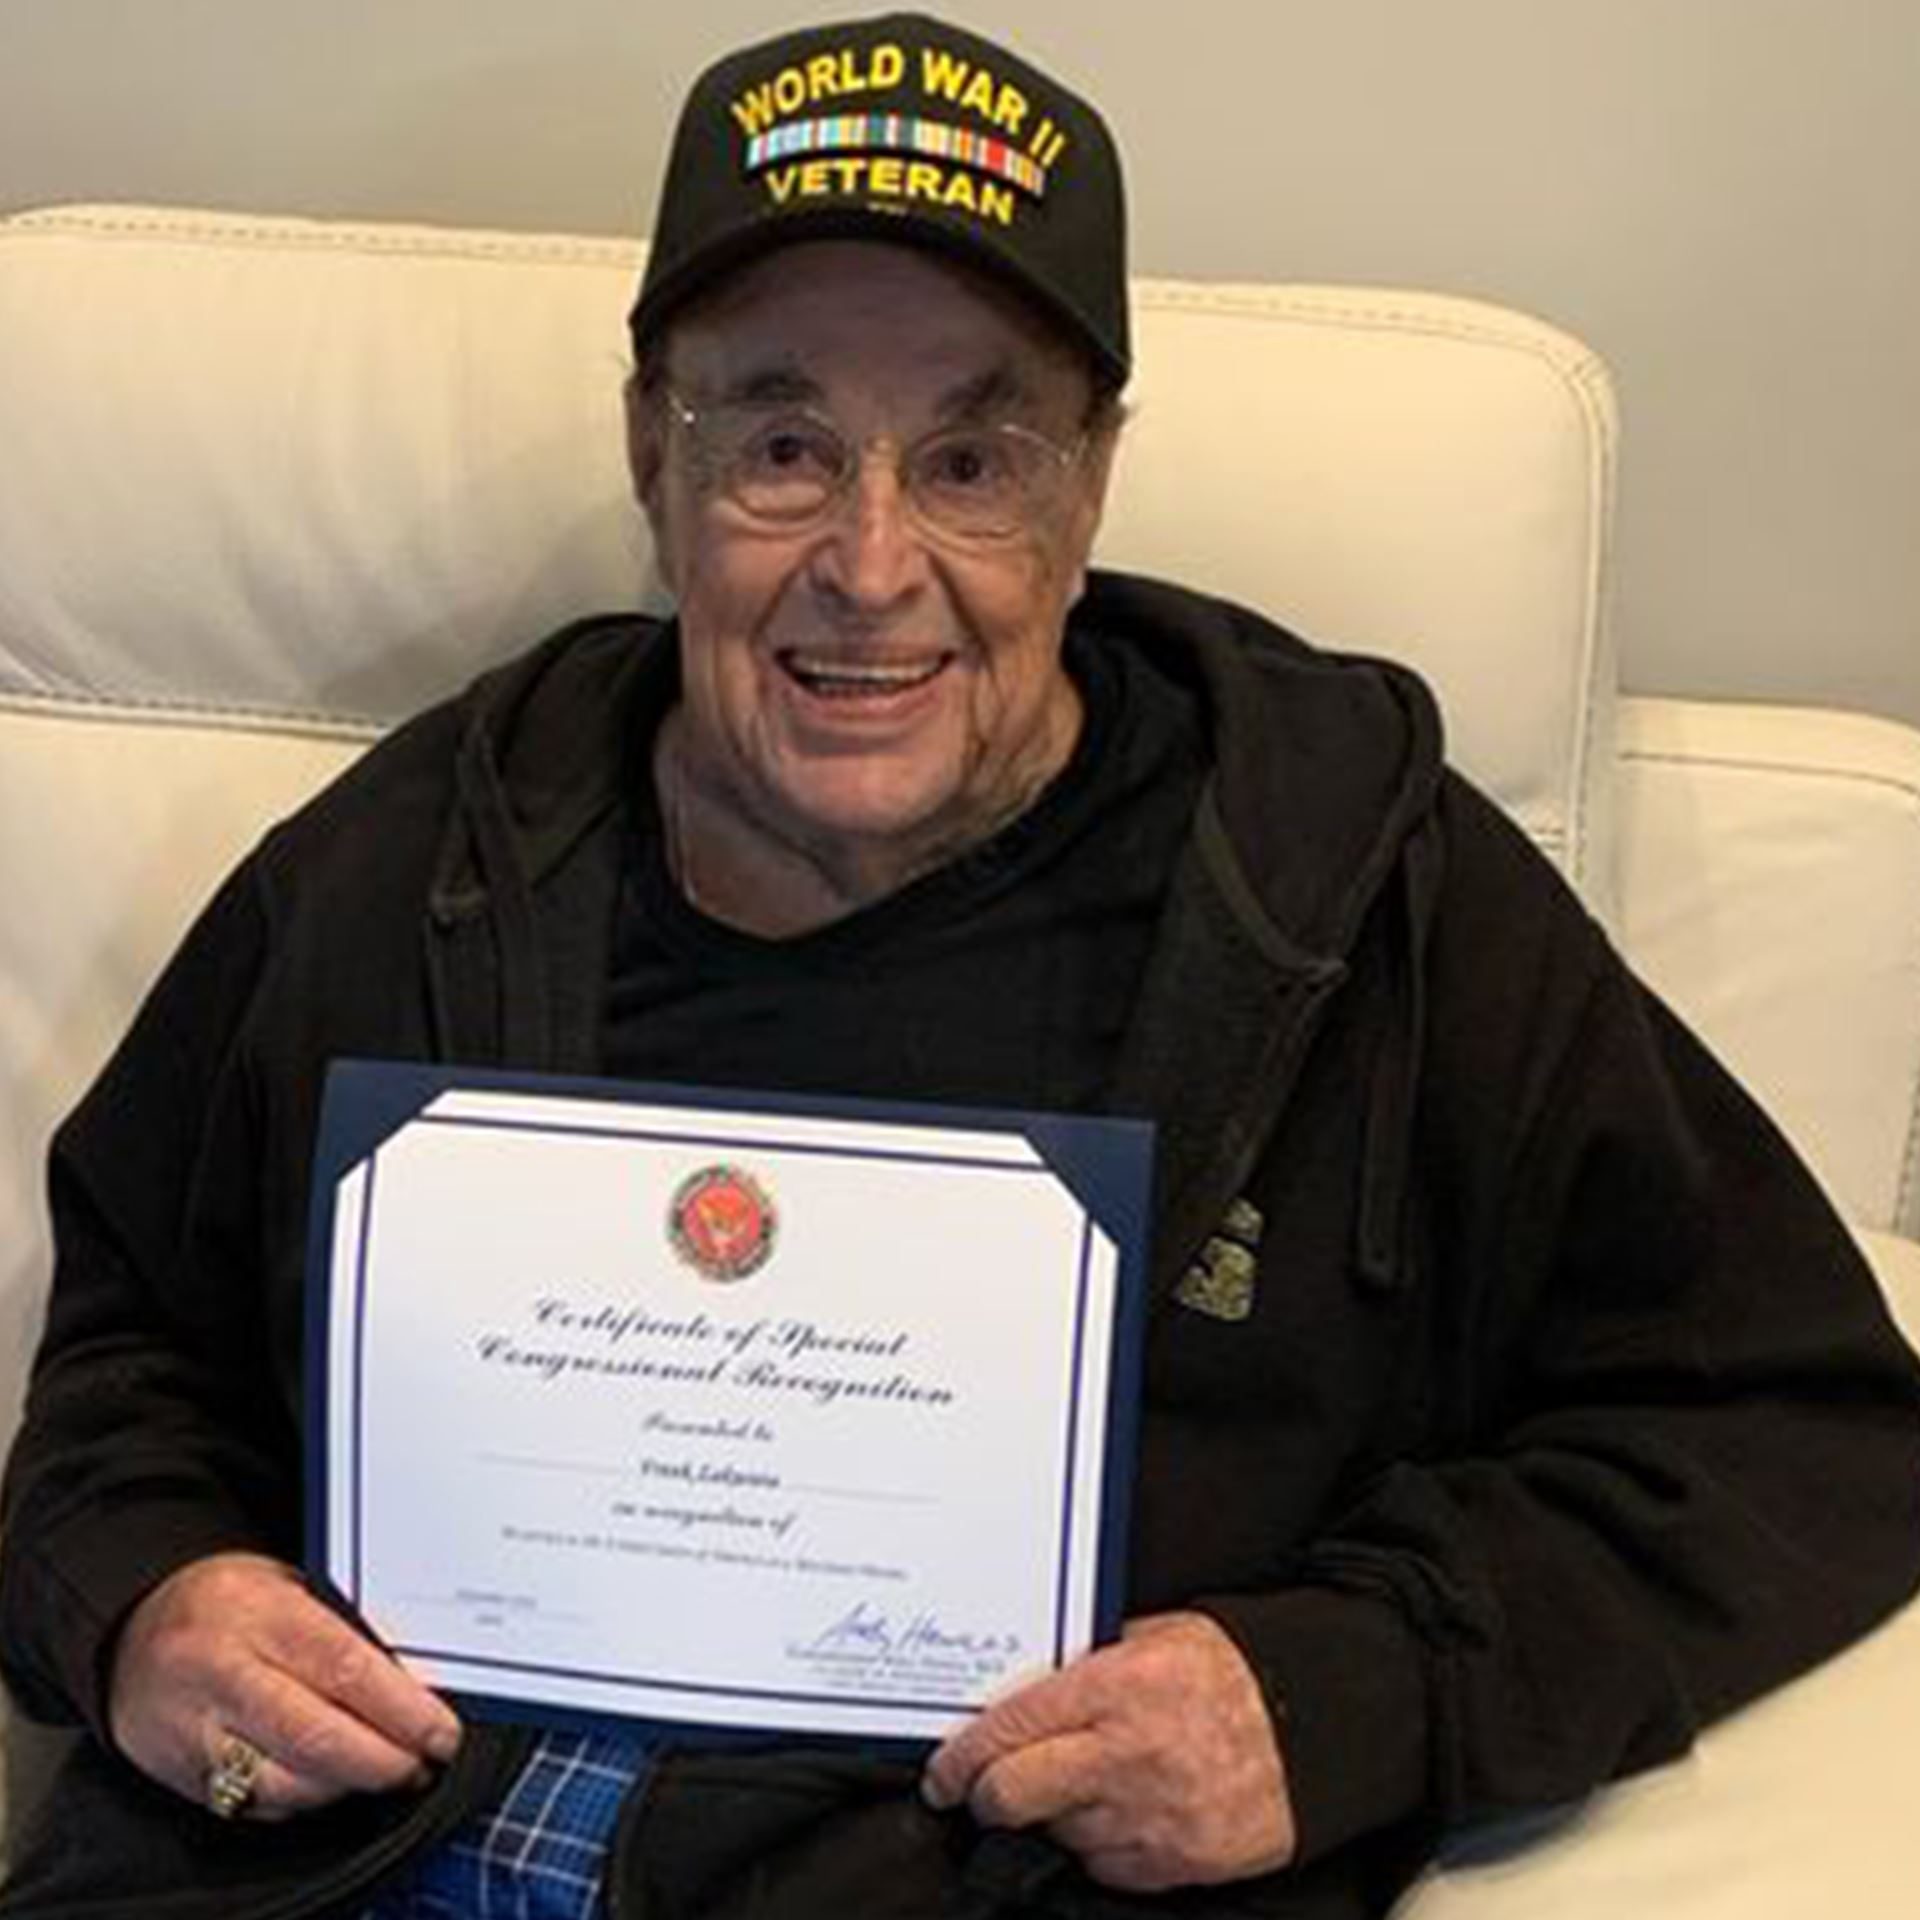 Frank Zakwieia, World War II Veteran